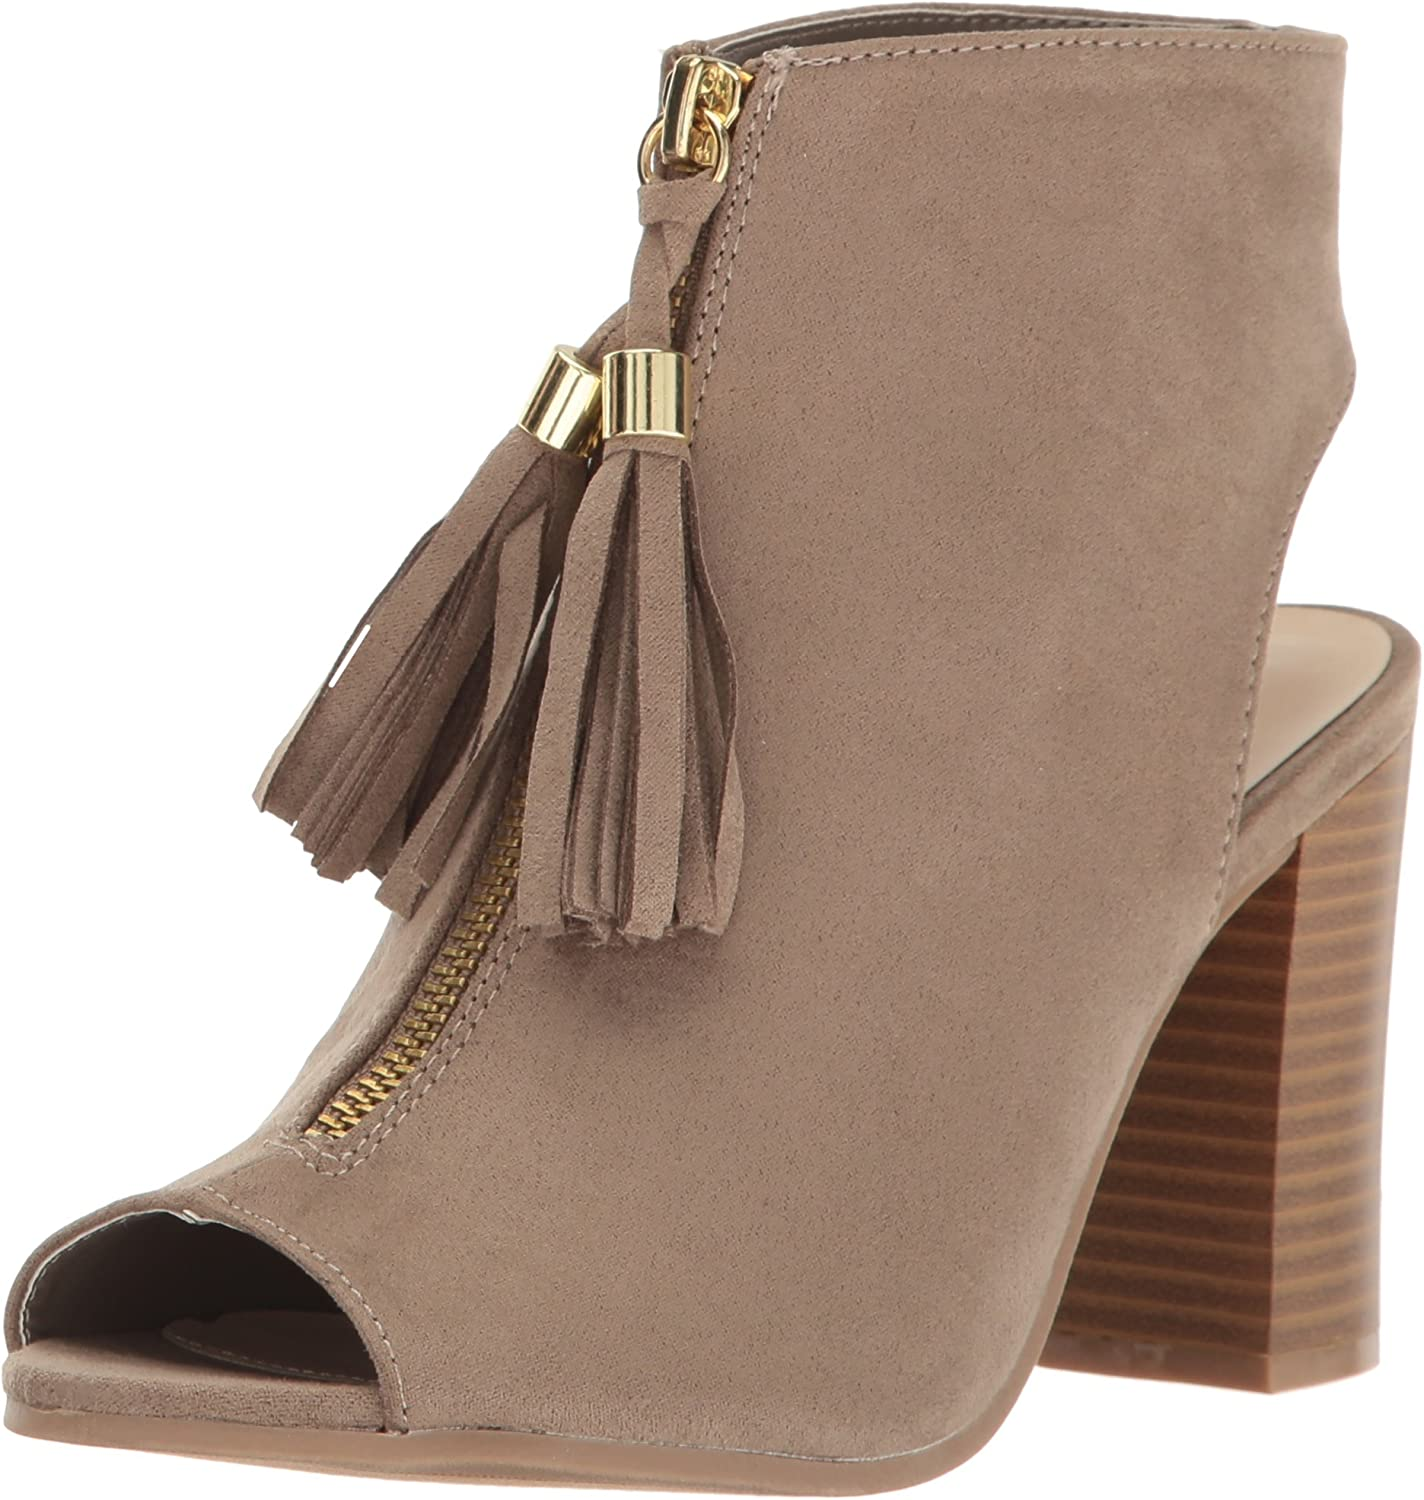 Qupid Women's Lucite-54a Dress Sandal Taupe